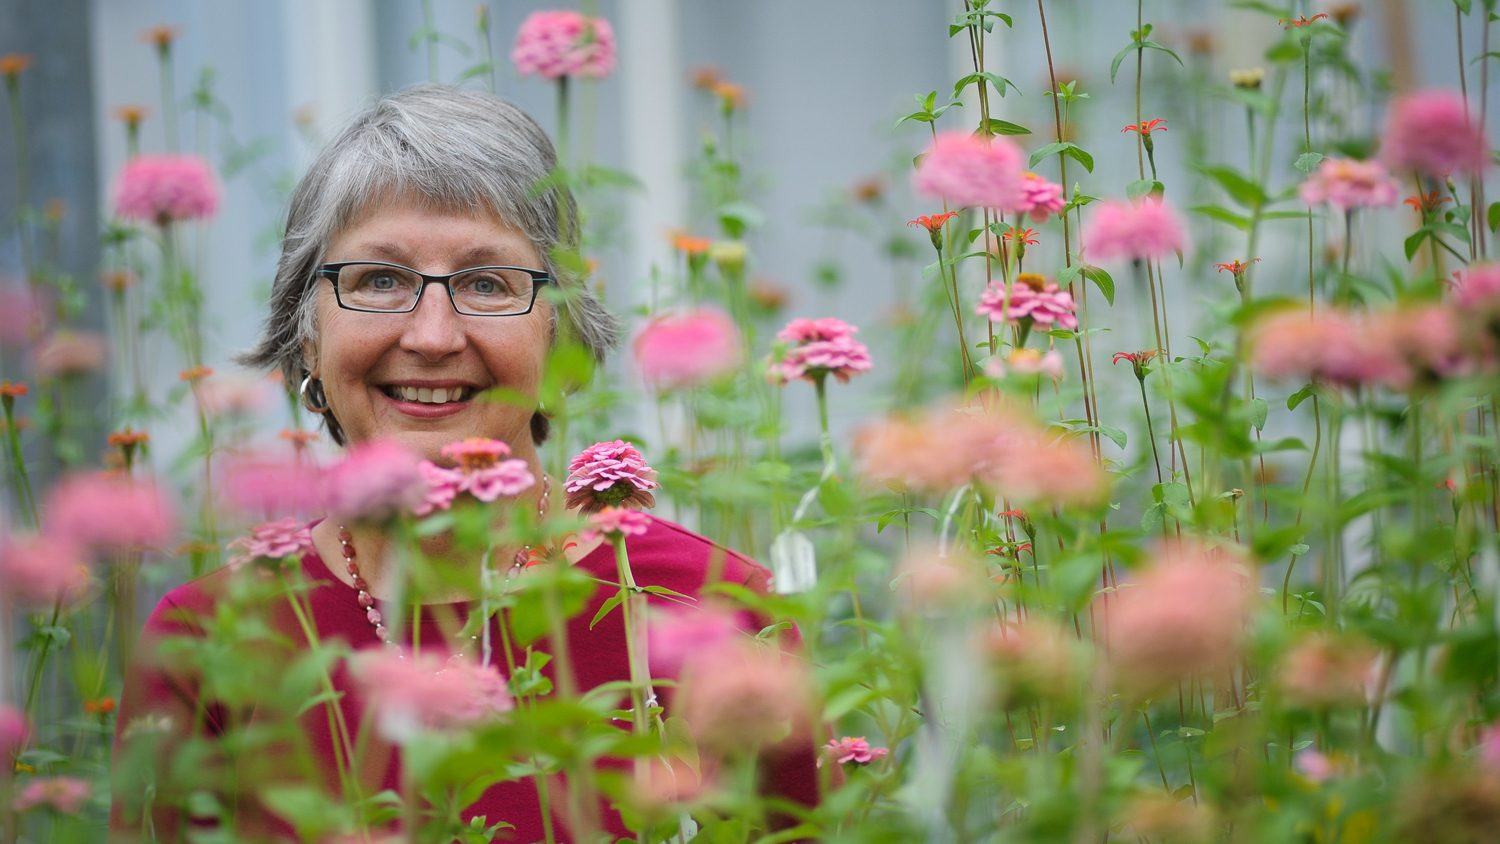 Faculty member Julia Kornegay standing among flowers.